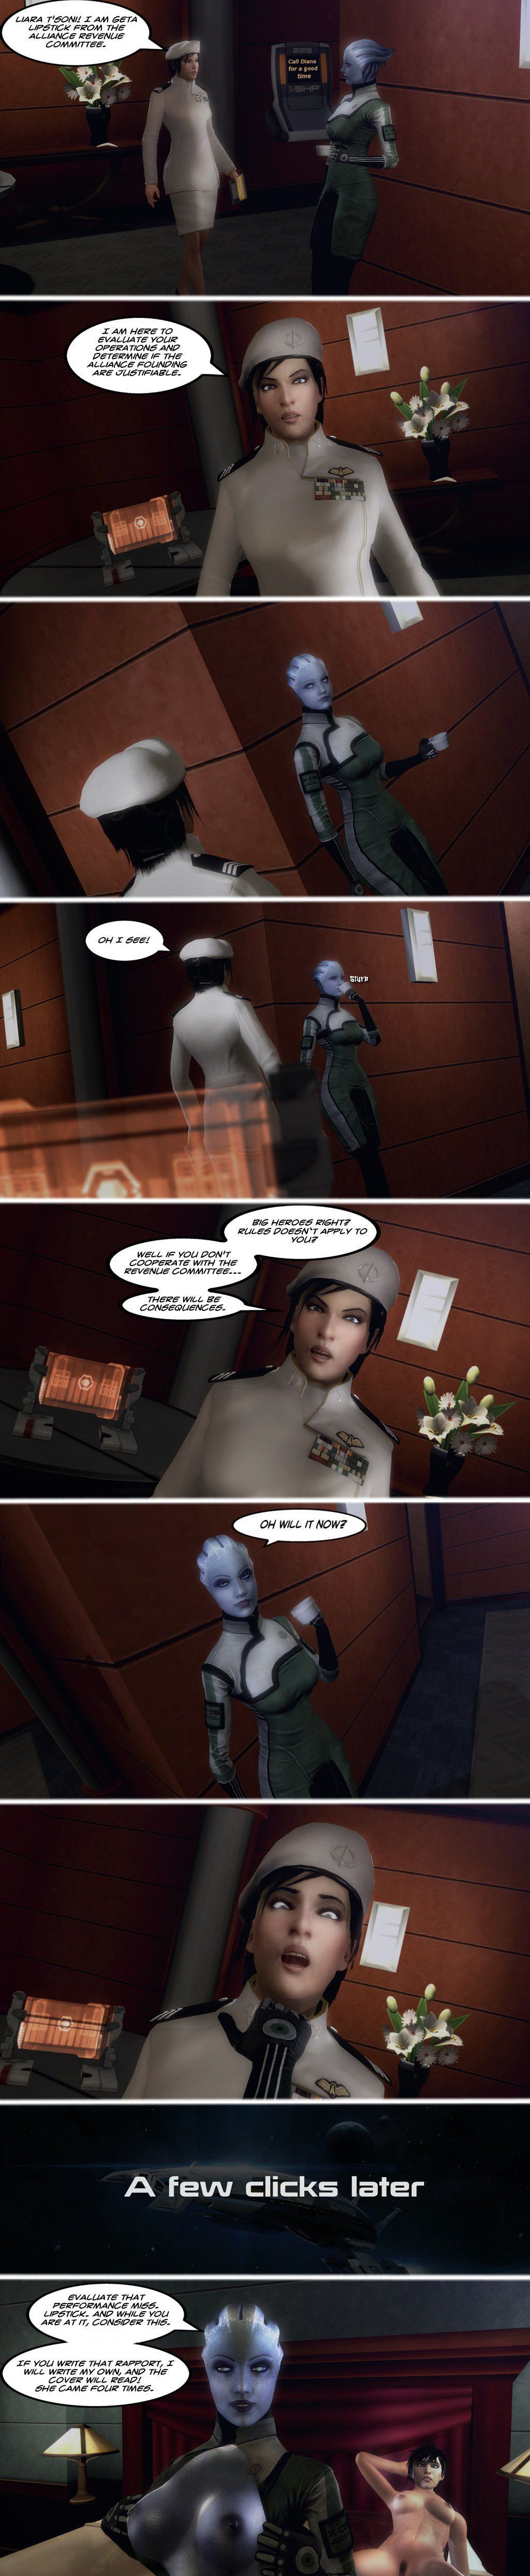 Updated gallery of the works of Rastifan Pt 2 (Comic Shorts) - part 5